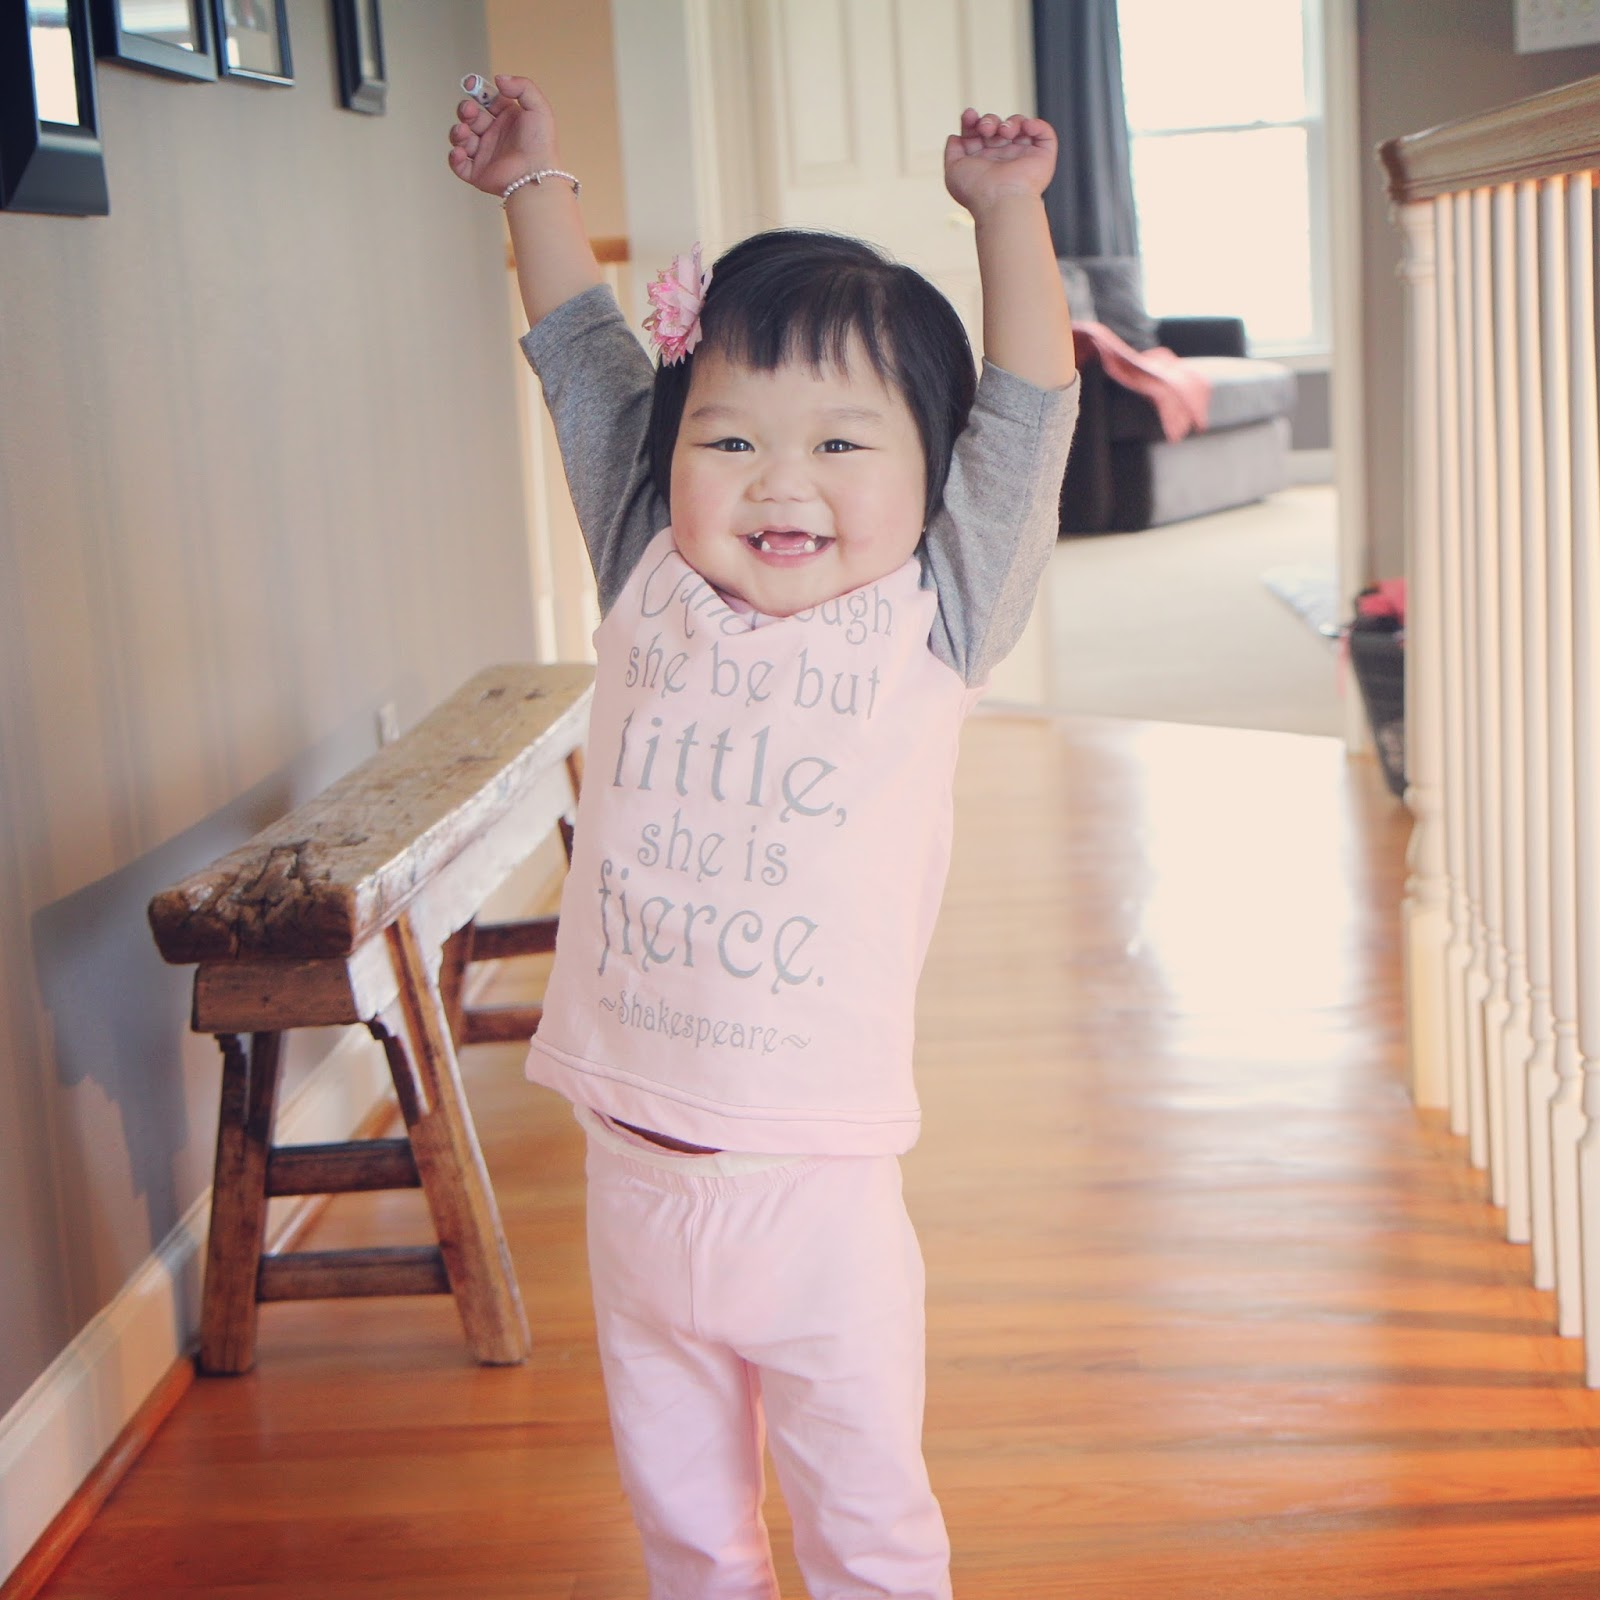 author's daughter with arms up